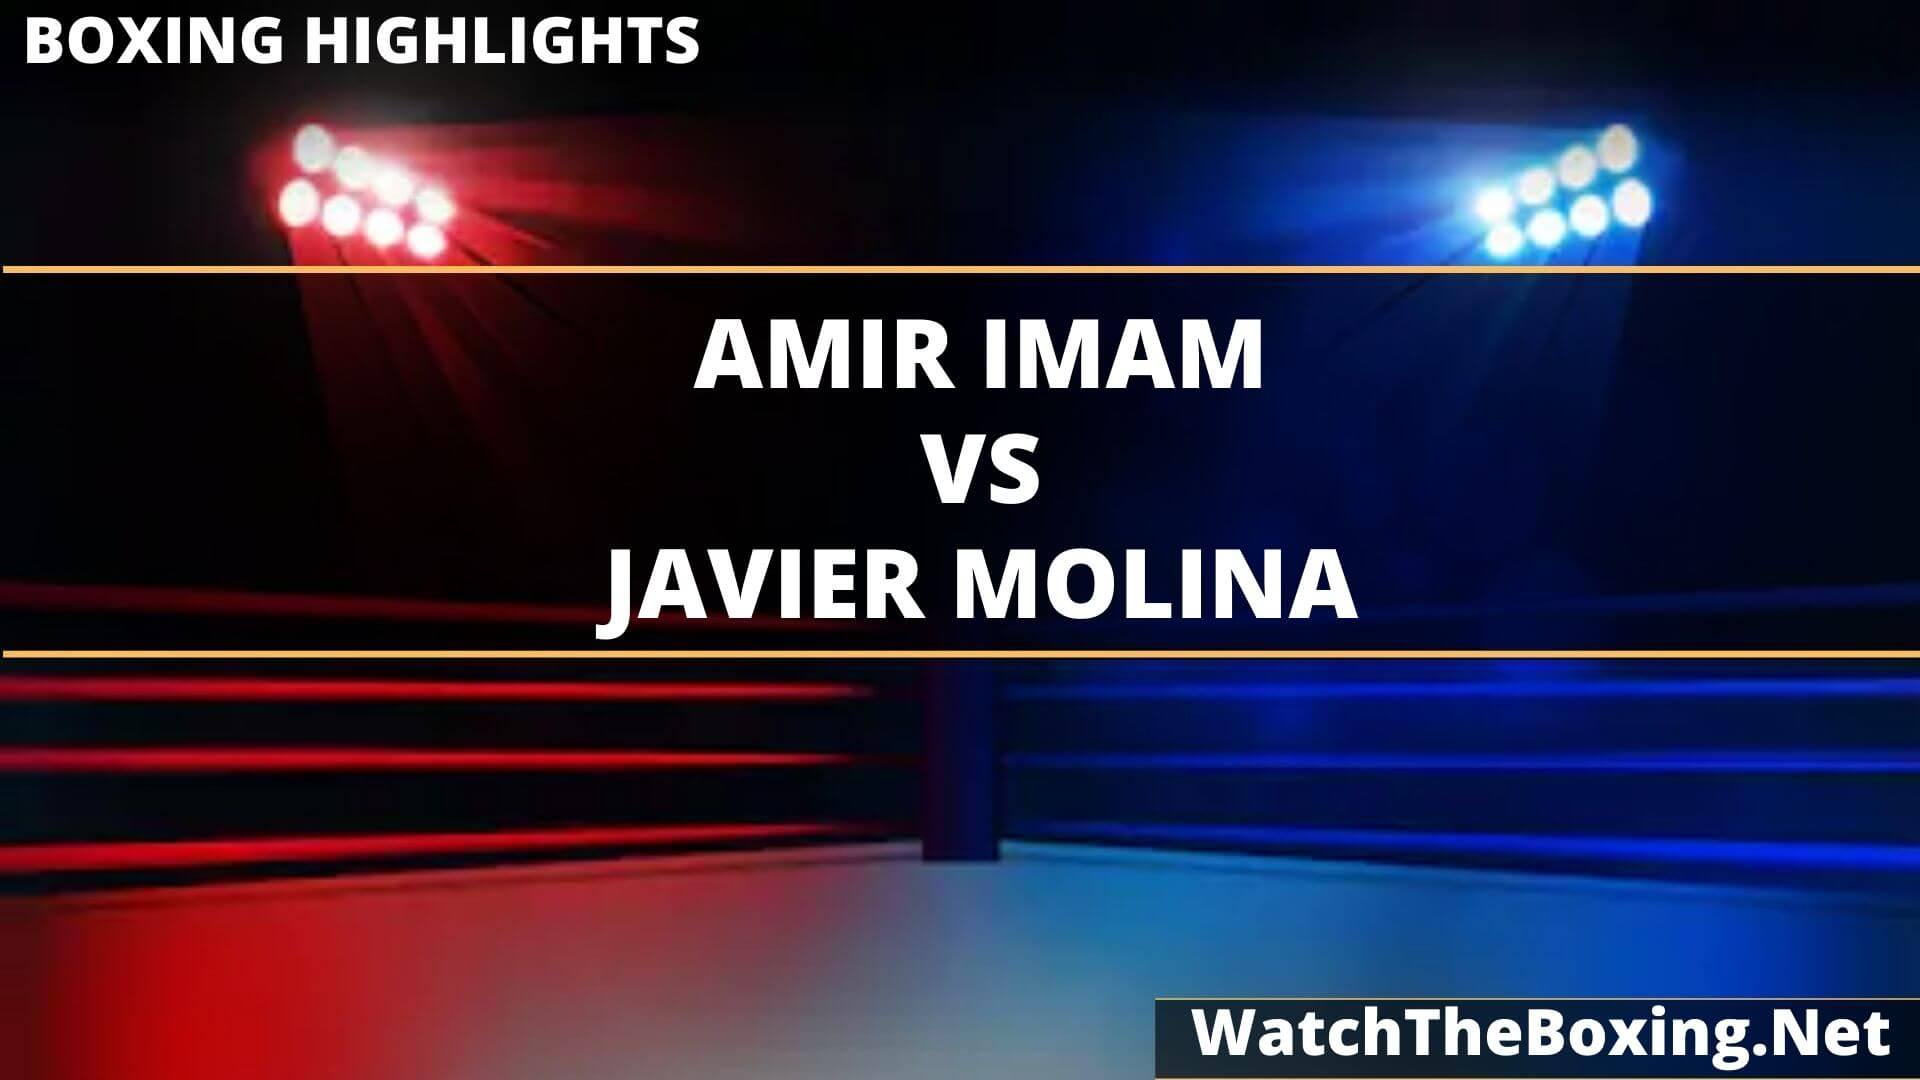 Amir Imam Vs Javier Molina Highlights 2020